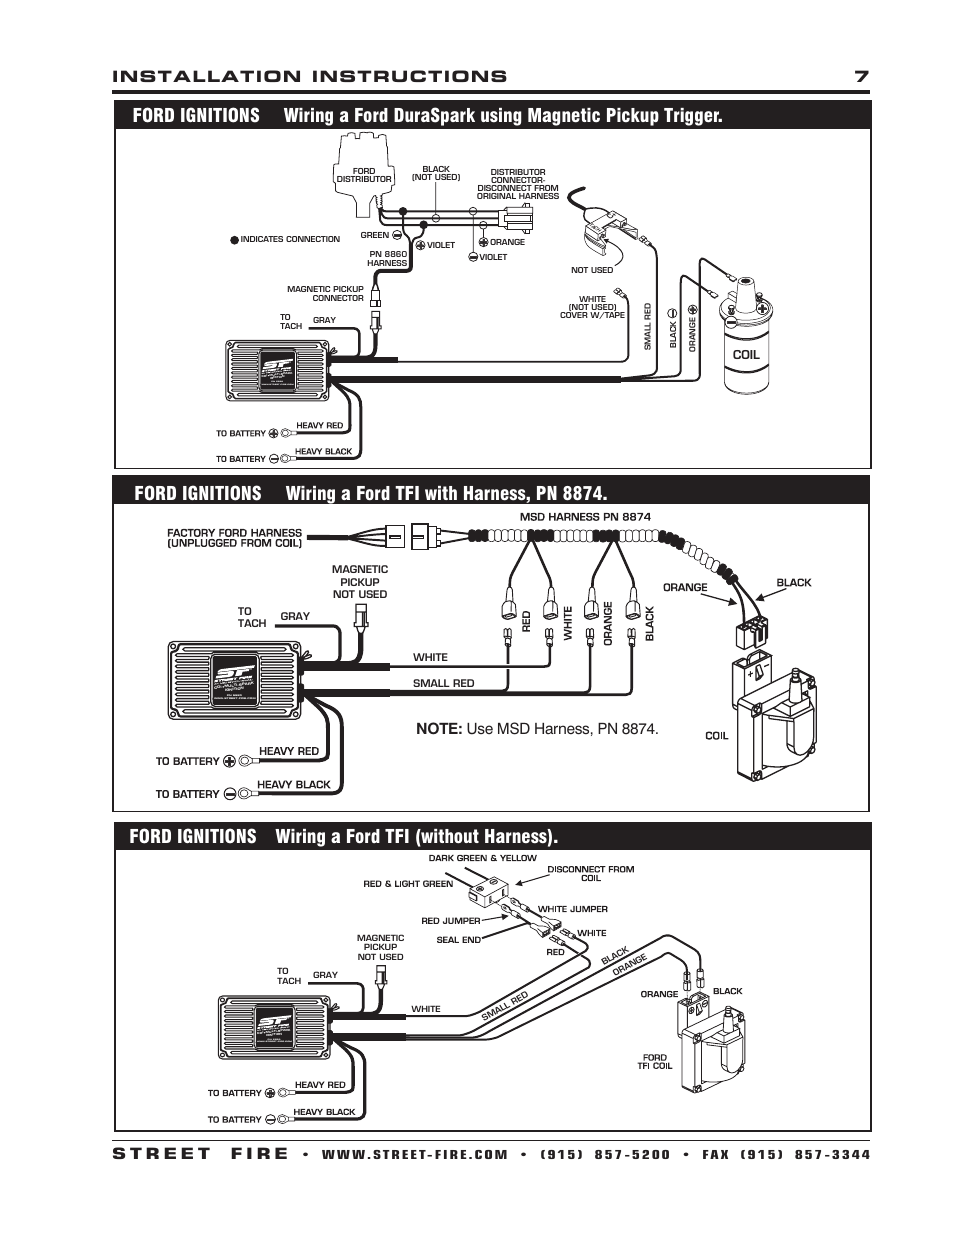 mopar msd ignition wiring diagram msd street fire wiring diagram - somurich.com